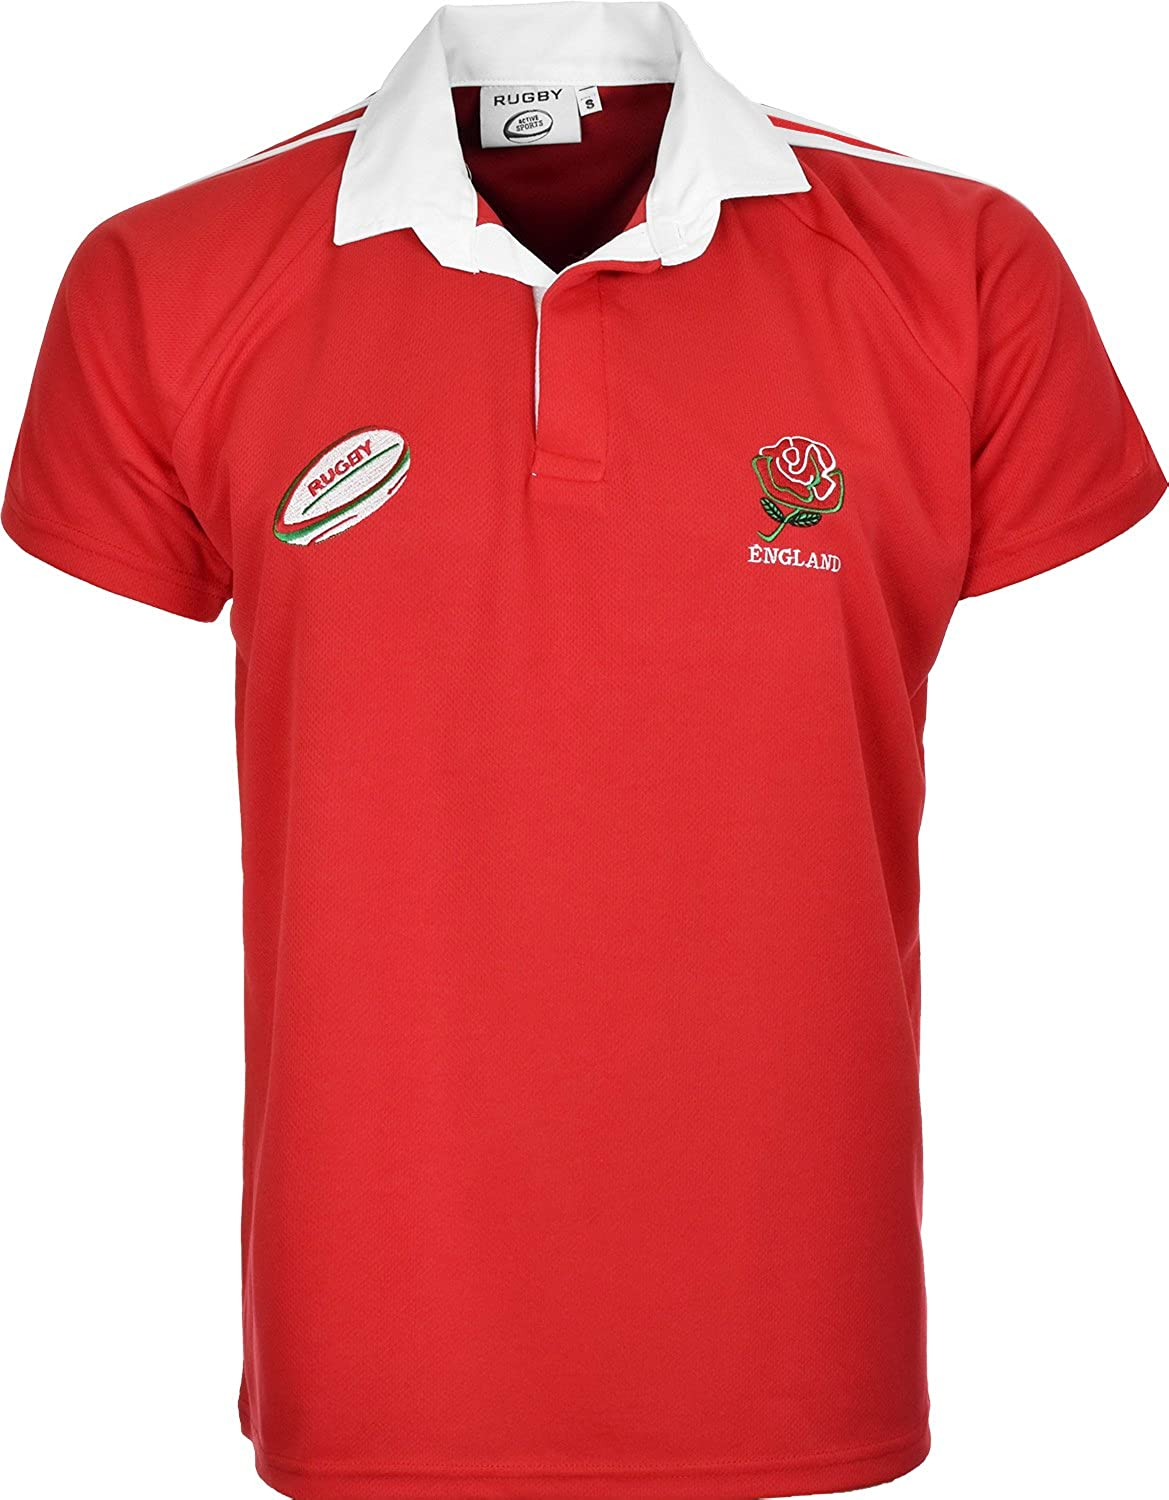 Activewear England Rugby World Cup Fan Shirts 2015 Size S to 2XL NMERFS01